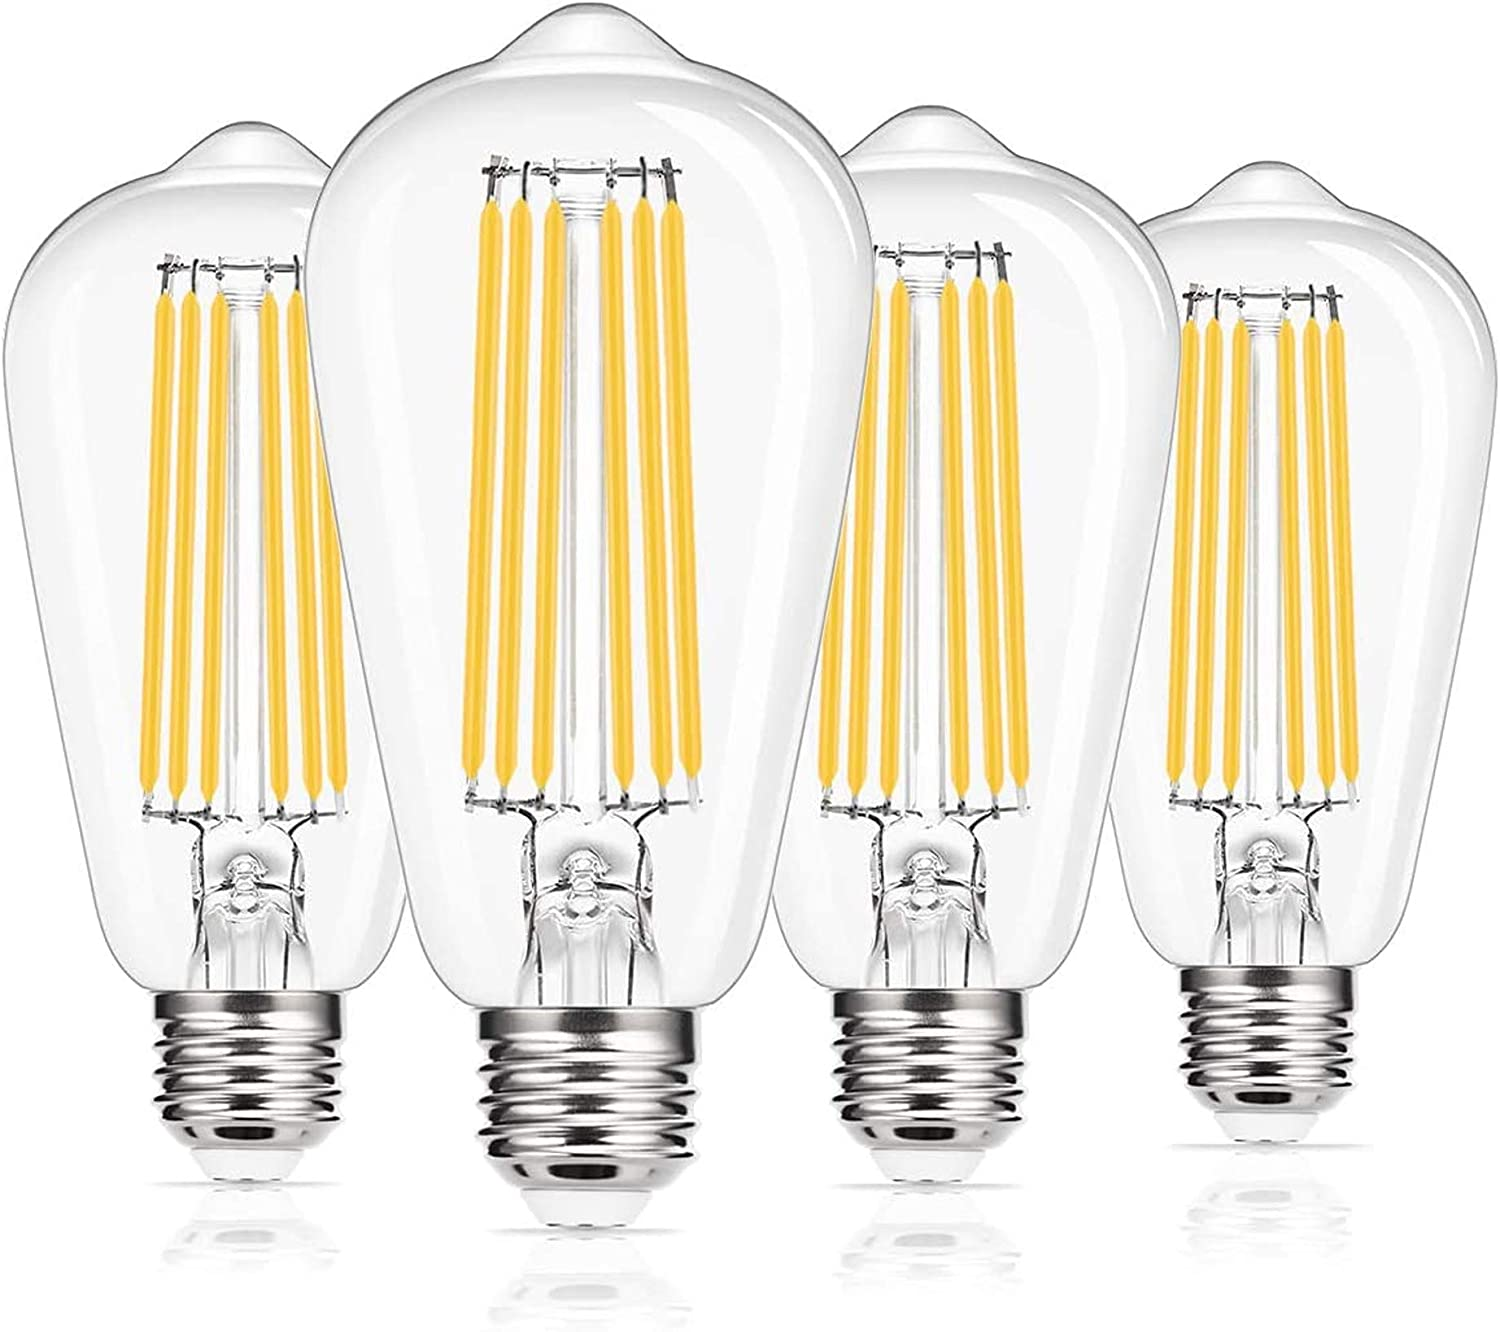 Vintage Led Edison Bulb, DORESshop ST64 Filament LED Light Bulb, E26 Base, 15W(150W Equivalent), 1800LM, Warm White 2700K, Clear Glass Light Bulb for Home, Office, Non-dimmable, 4 Pack